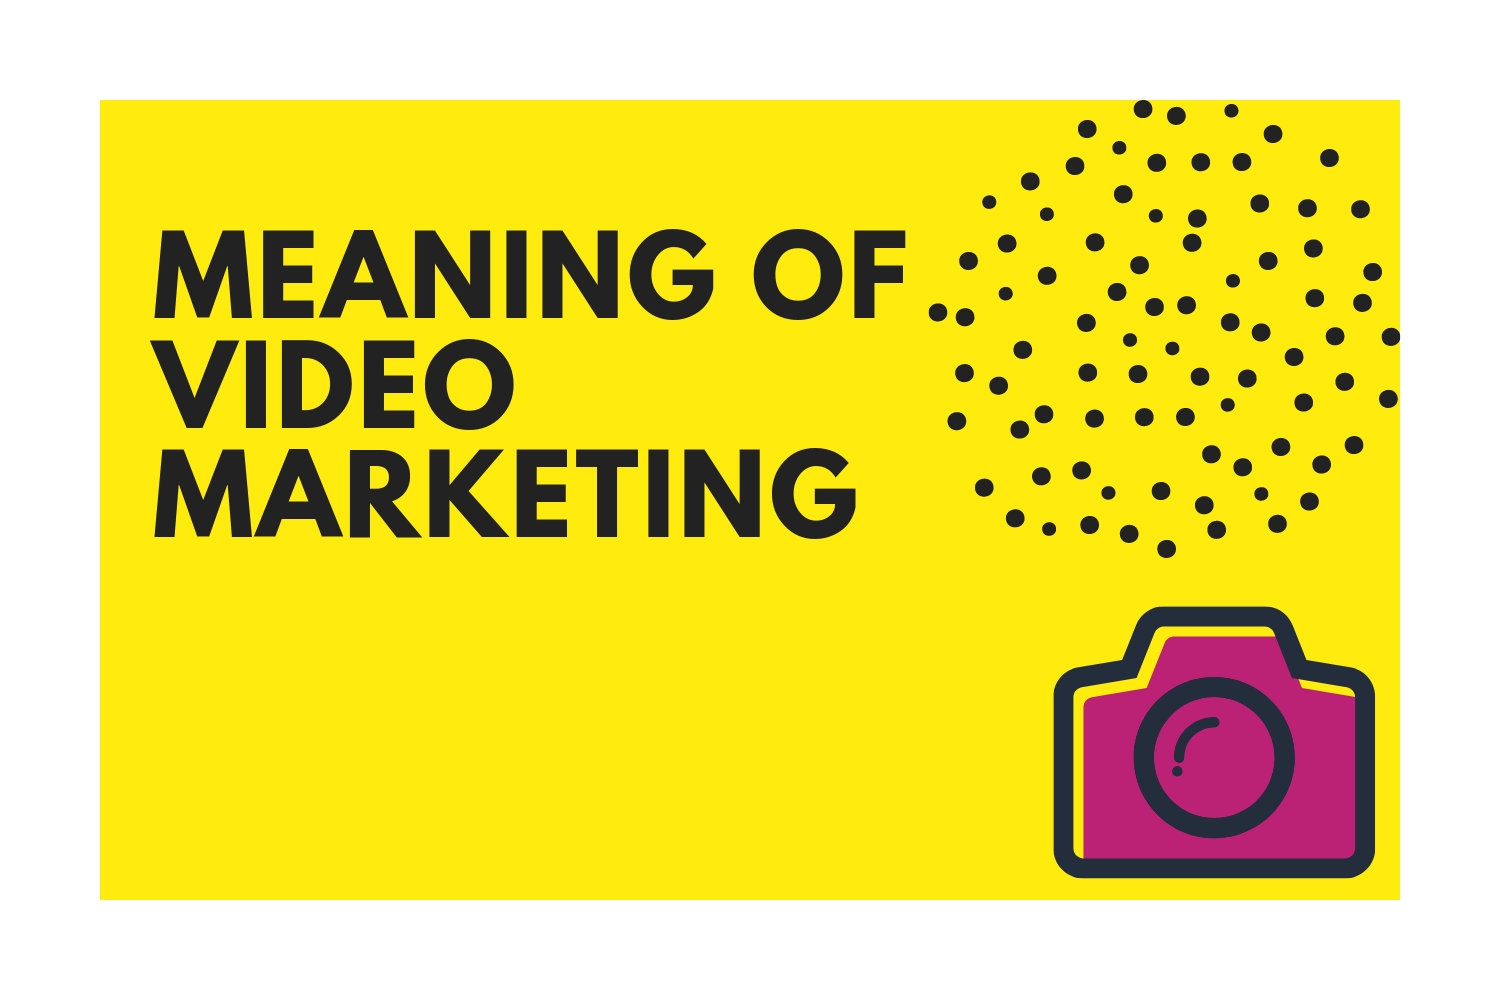 Meaning of video marketing